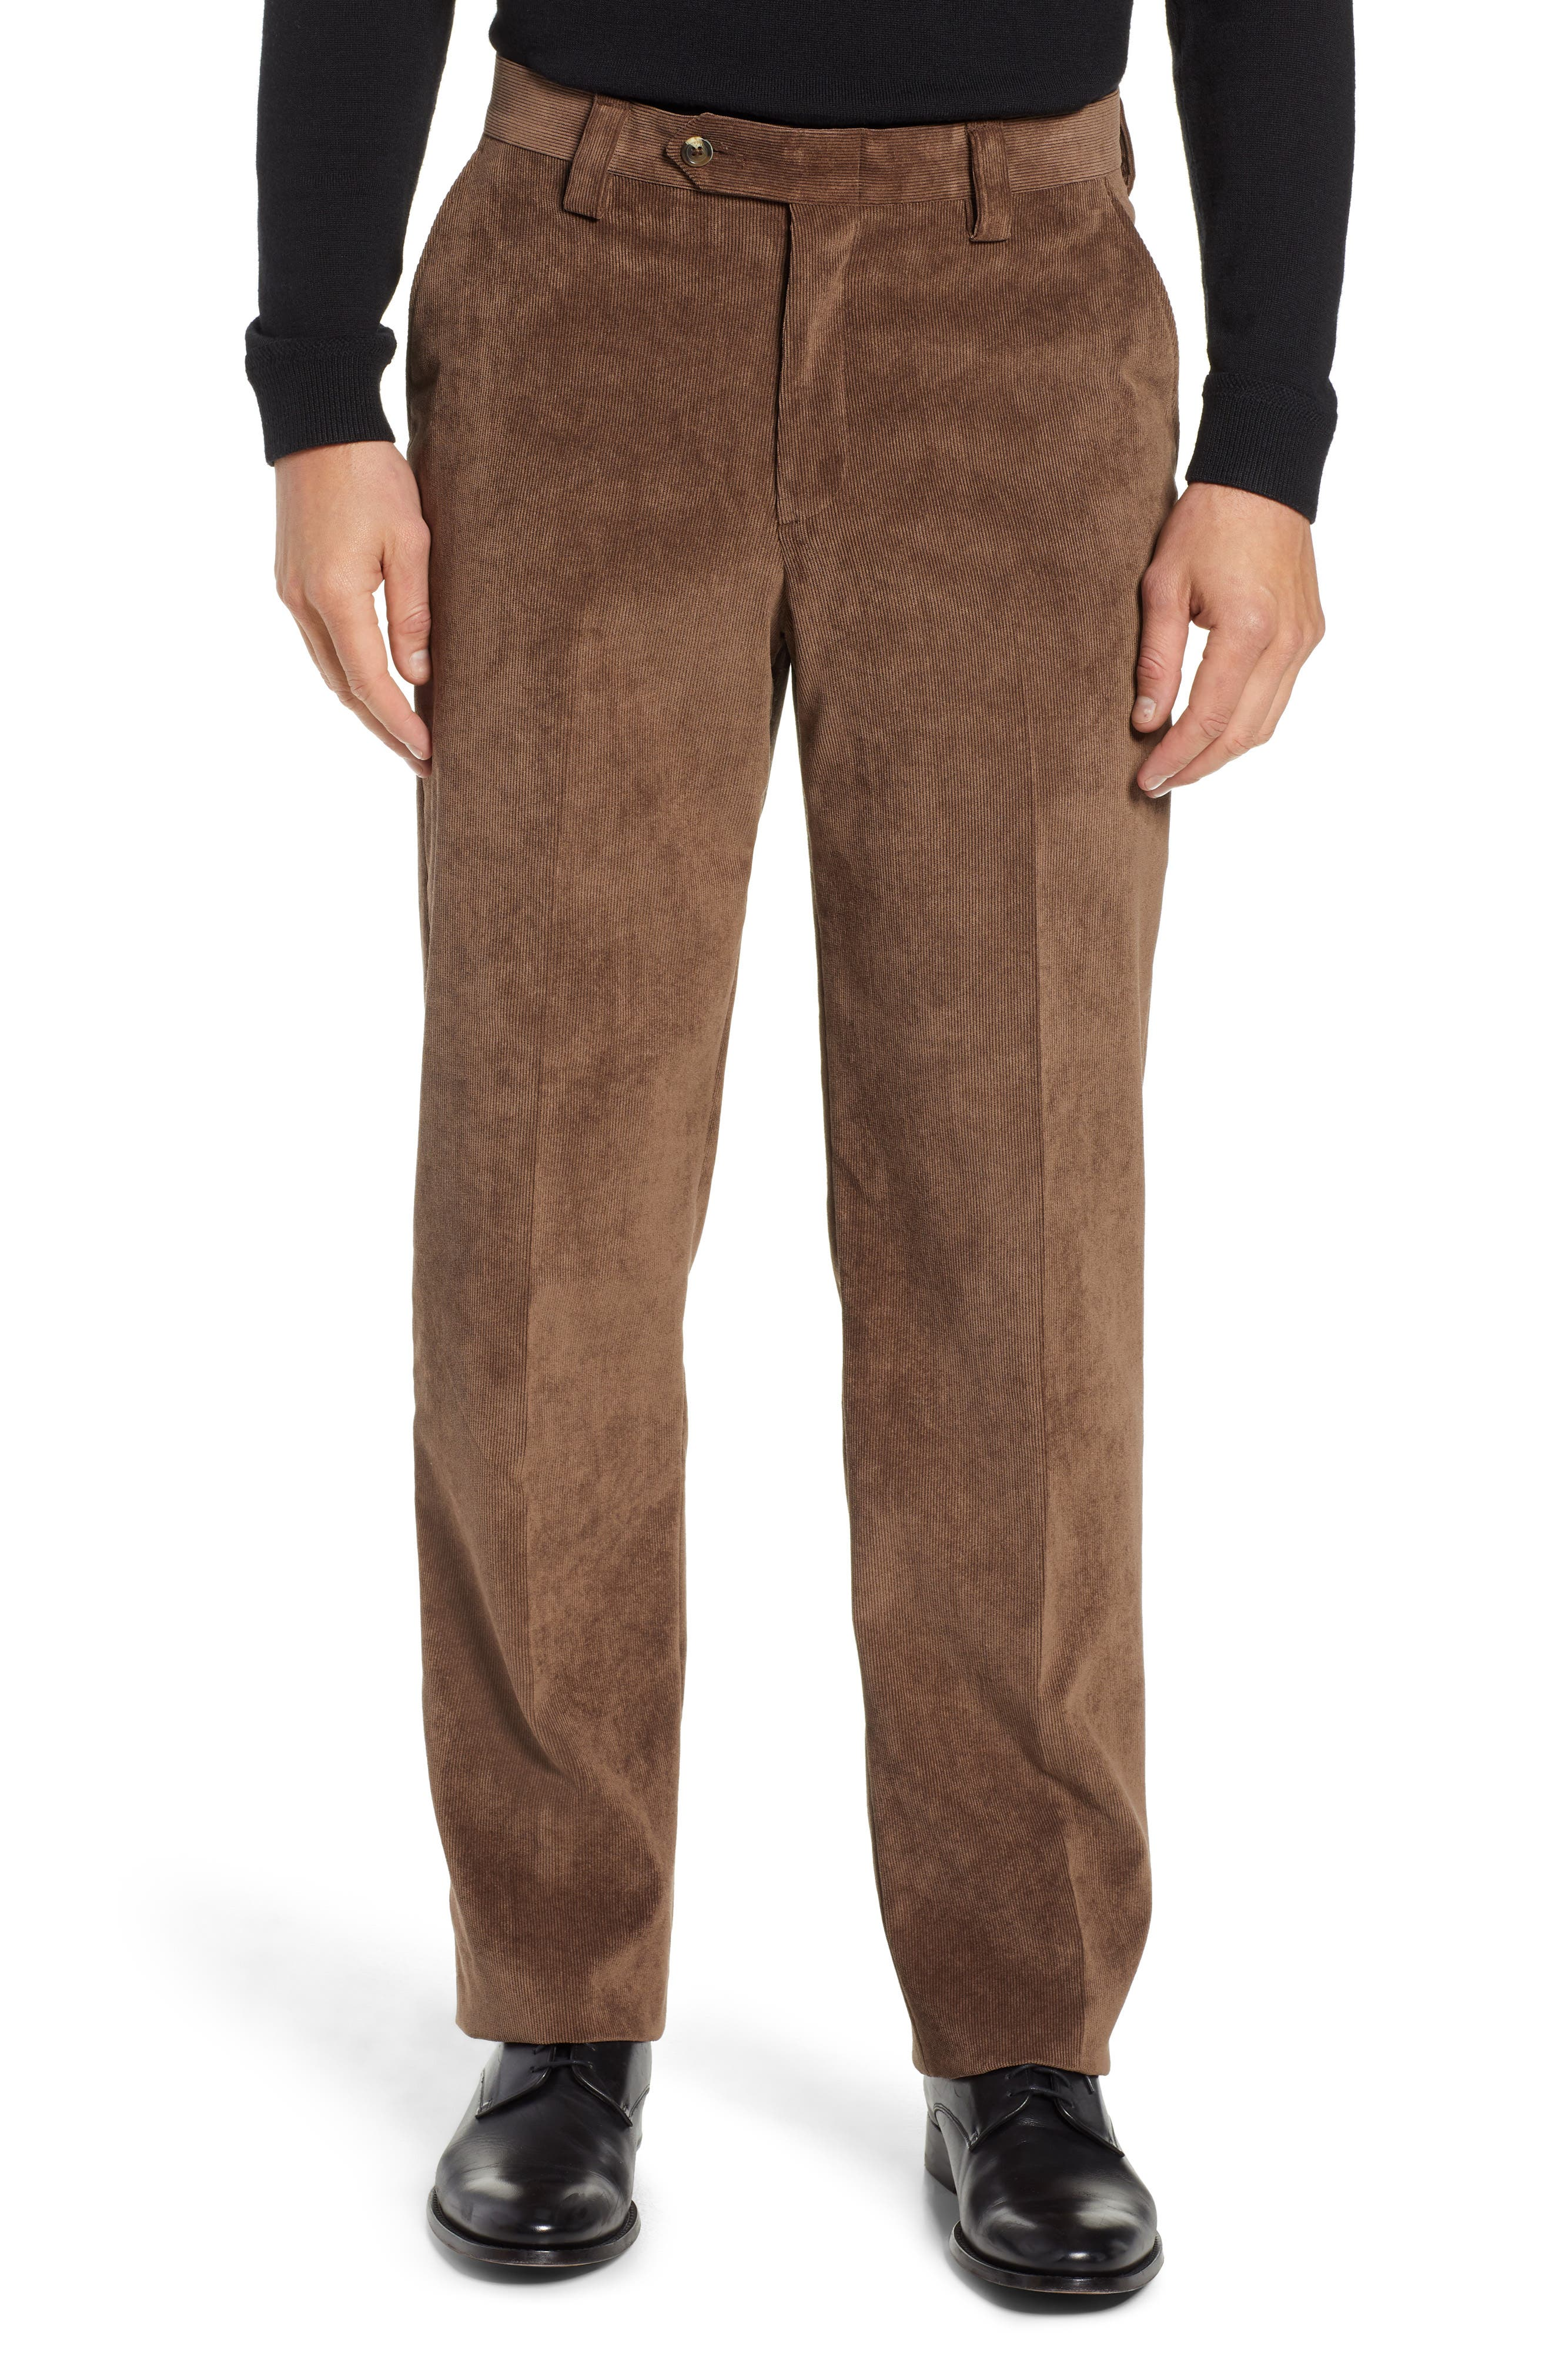 BERLE Classic Fit Flat Front Corduroy Trousers, Main, color, 200